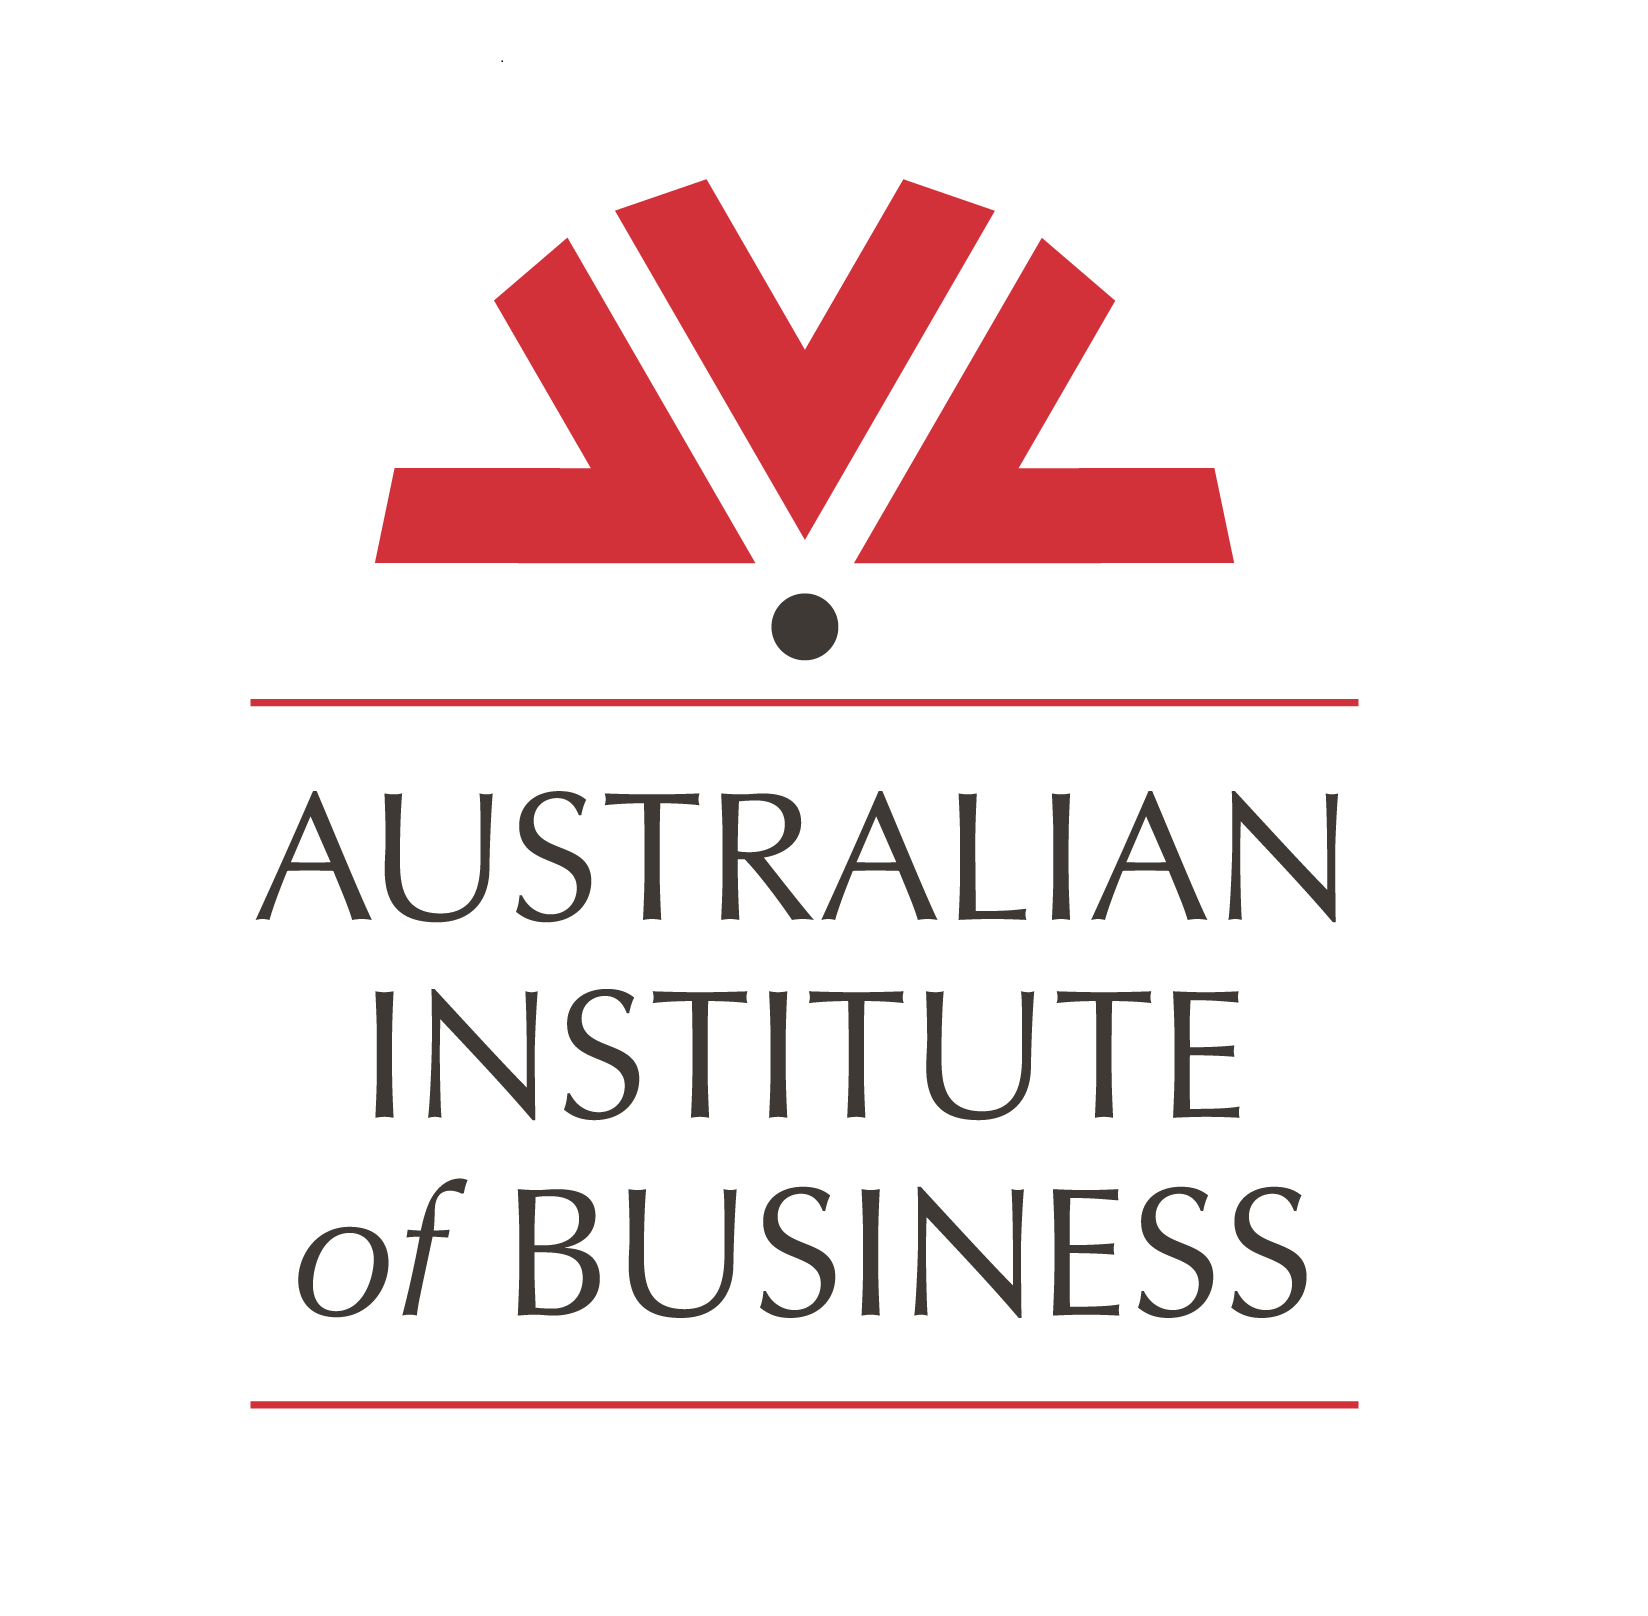 Australian institute of business aib questions answers australian institute of business aib questions answers productreview xflitez Choice Image